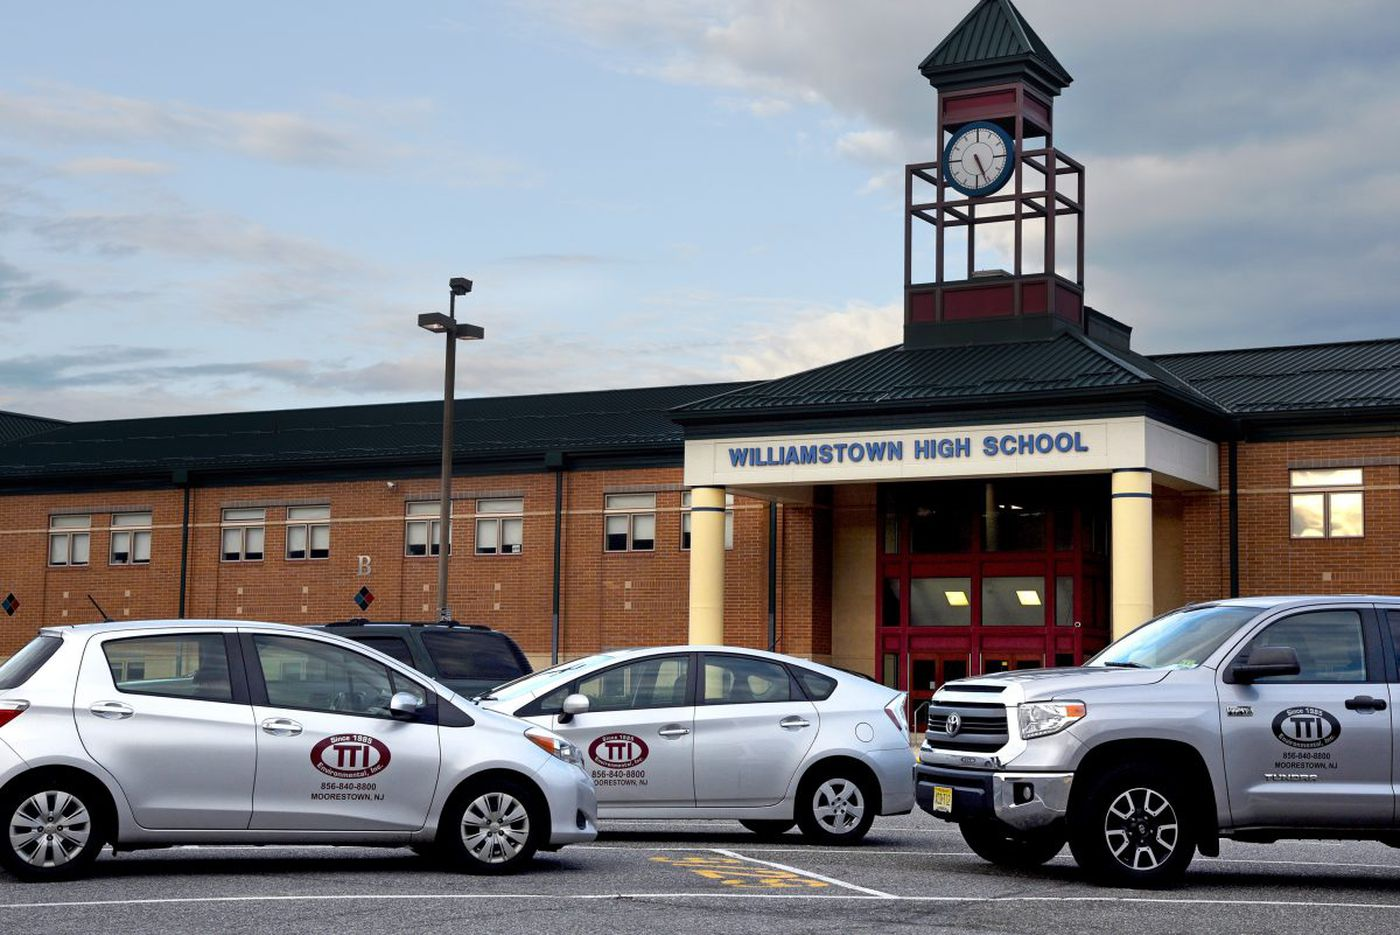 Mold inspections completed, but Monroe Twp. district not clear on school reopening